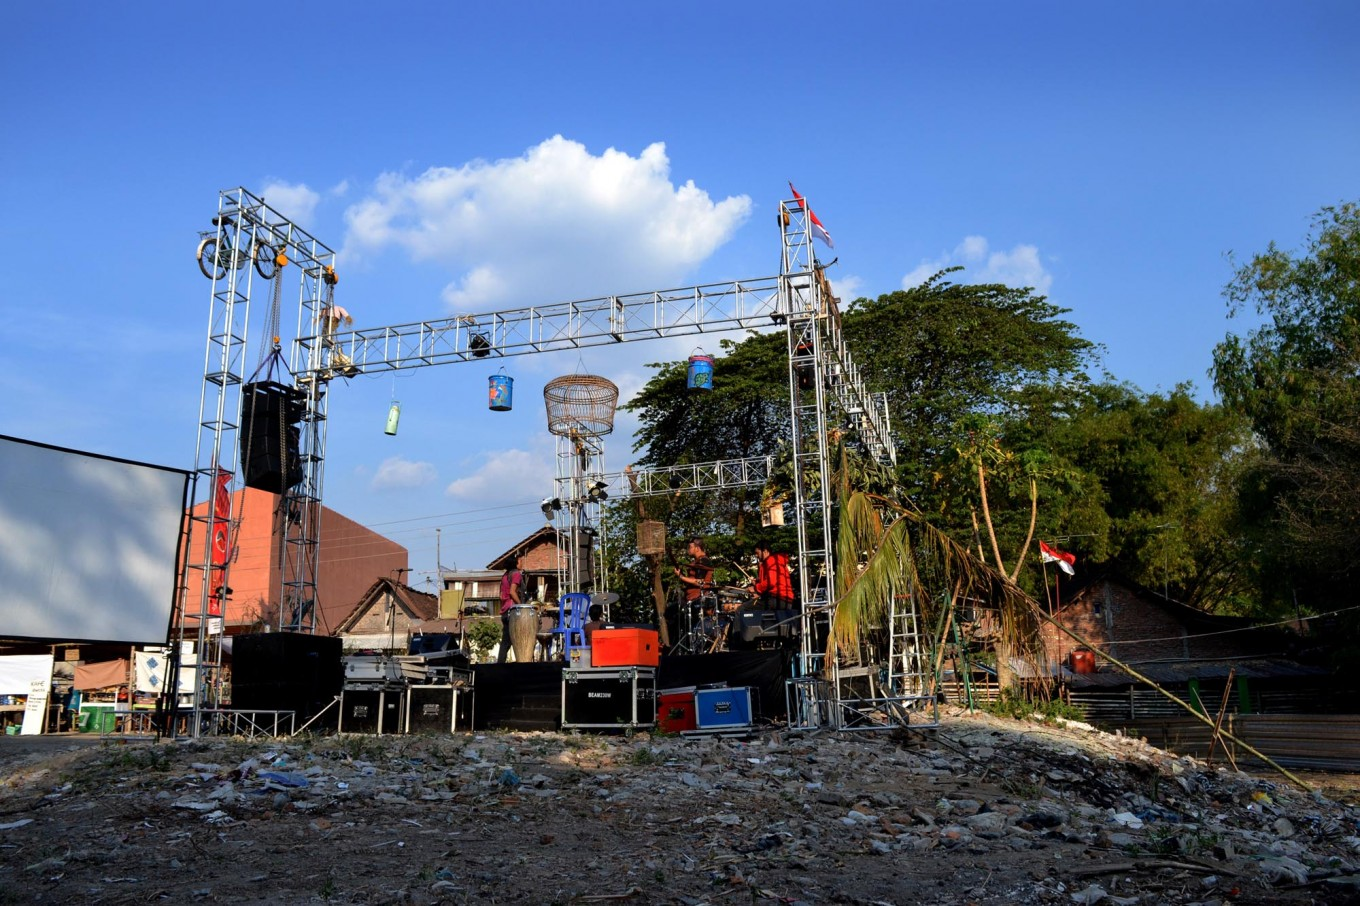 Baron Cilik's central field witnesses a stage being assembled ahead of the inaugural Jener River Festival, which was held to raise environmental awareness on conserving the river. JP/Stefanus Ajie